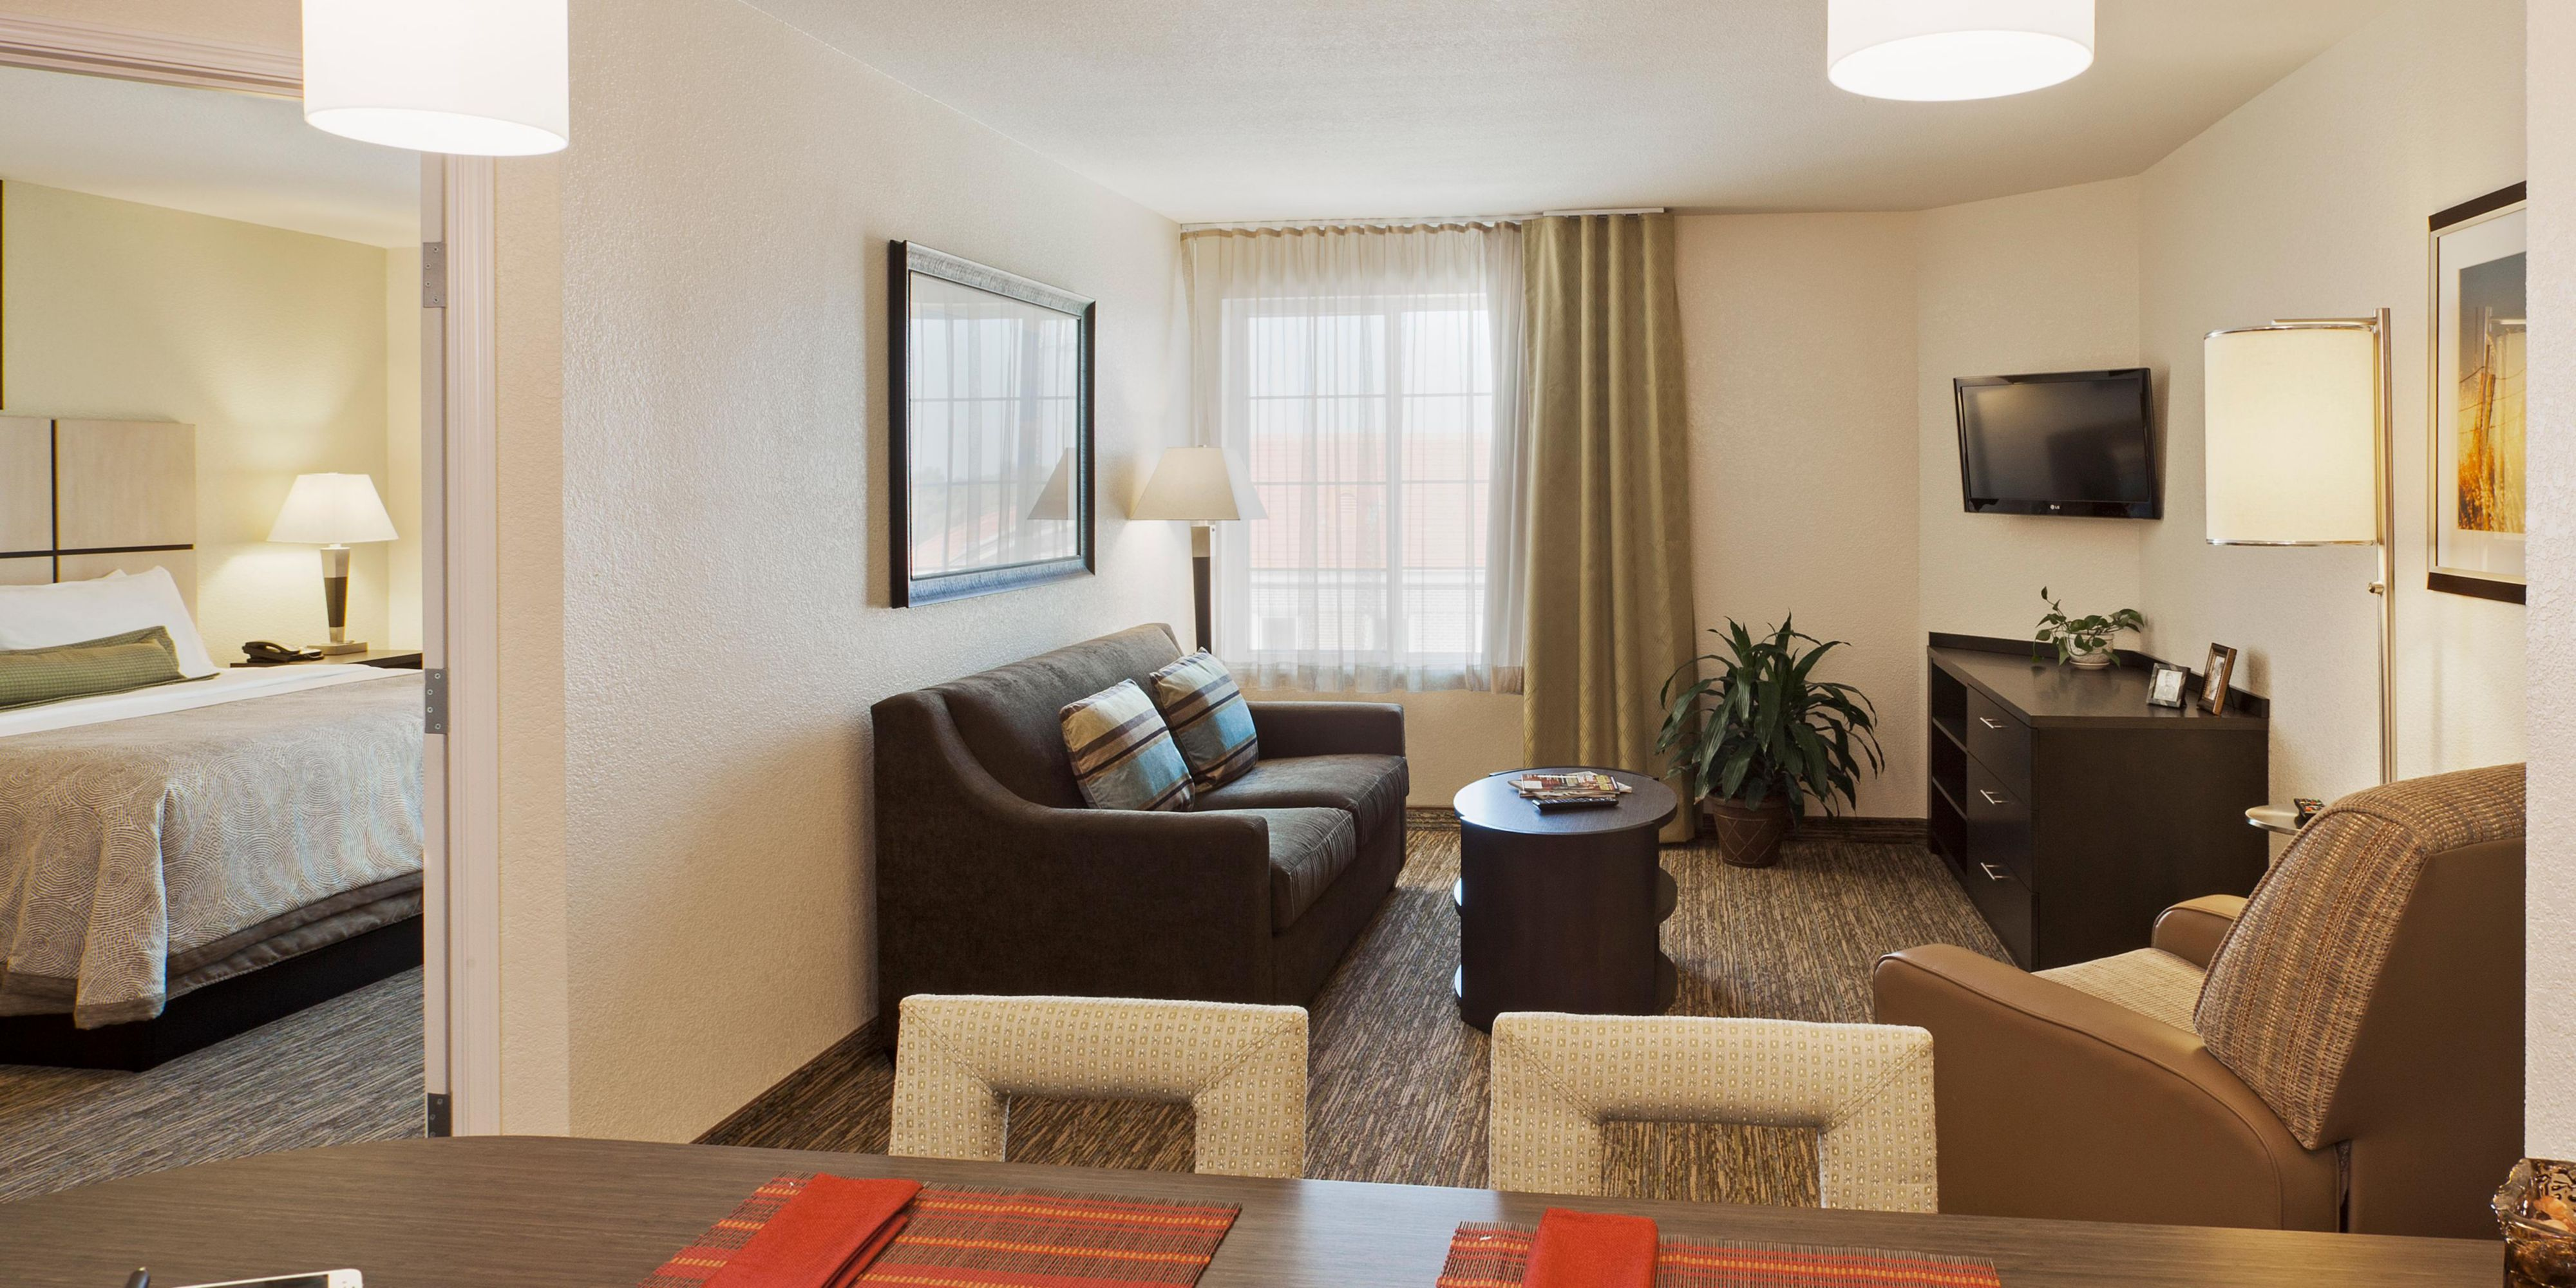 Free Lakecharles Hotels Candlewood Suites Lake Charles South Extended Stay  Hotel In Lakecharles Louisiana With Home